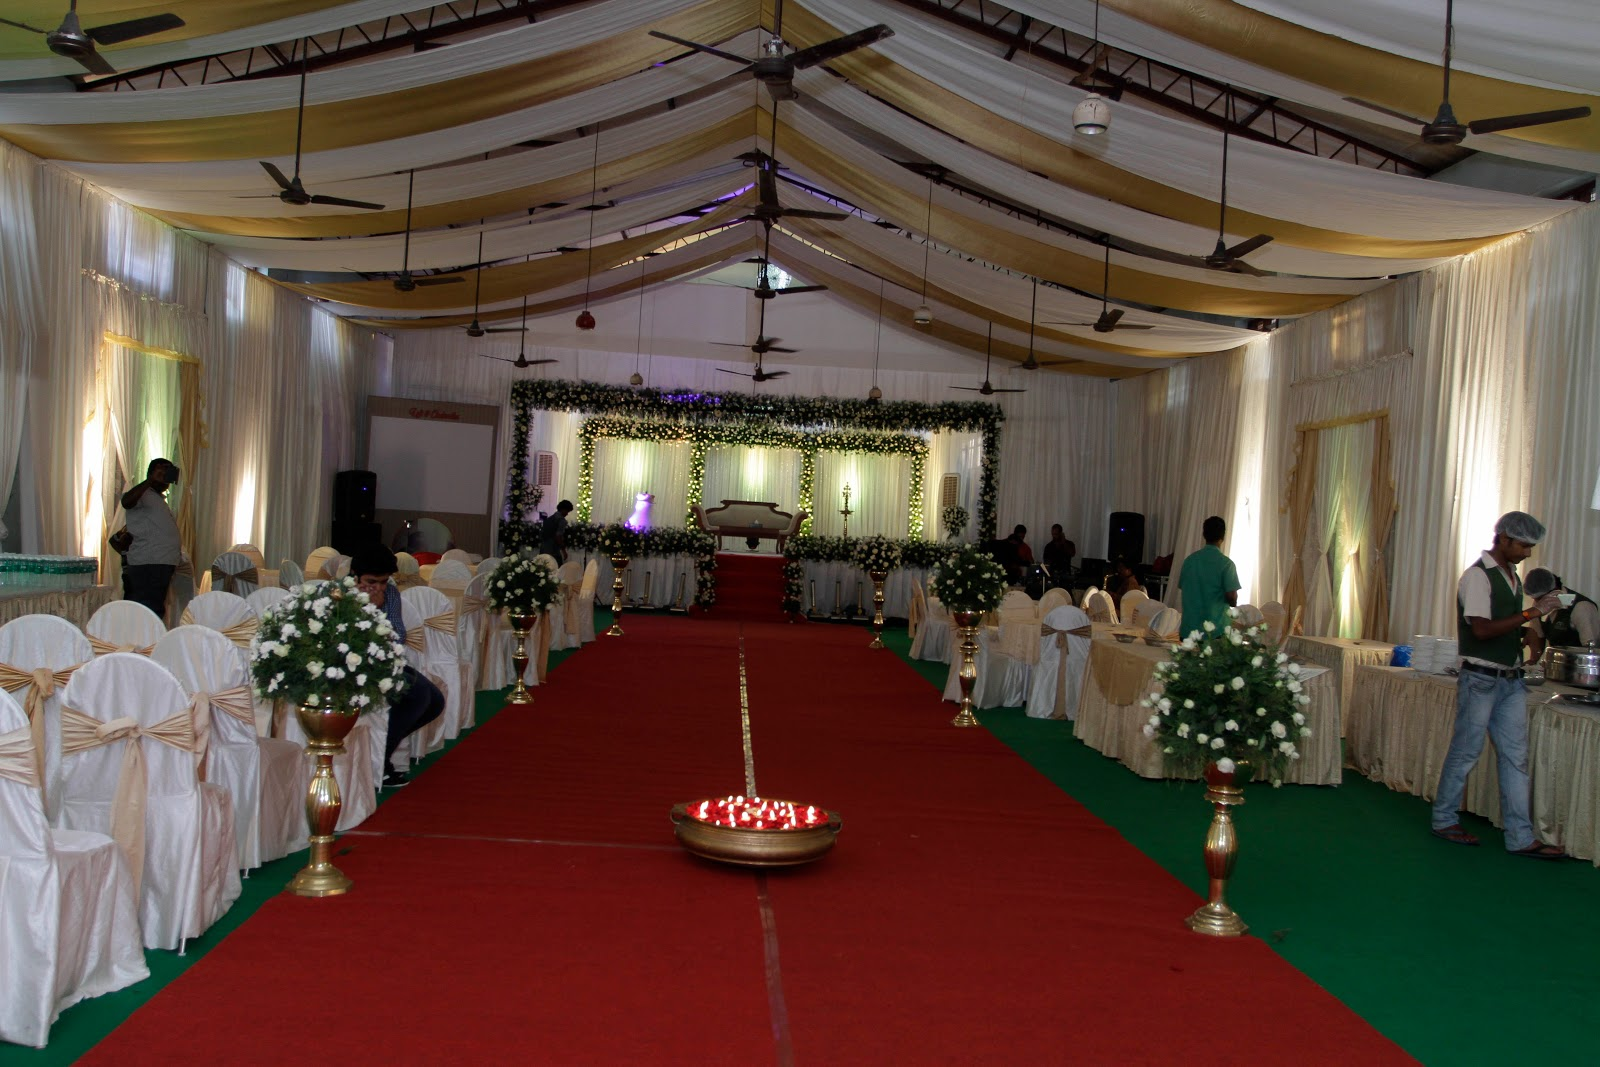 wedding planner pathanamthitta +f,  wedding planner pathanamthitta + g,  wedding planner pathanamthitta + h,  wedding planner pathanamthitta + i,  wedding planner pathanamthitta + j